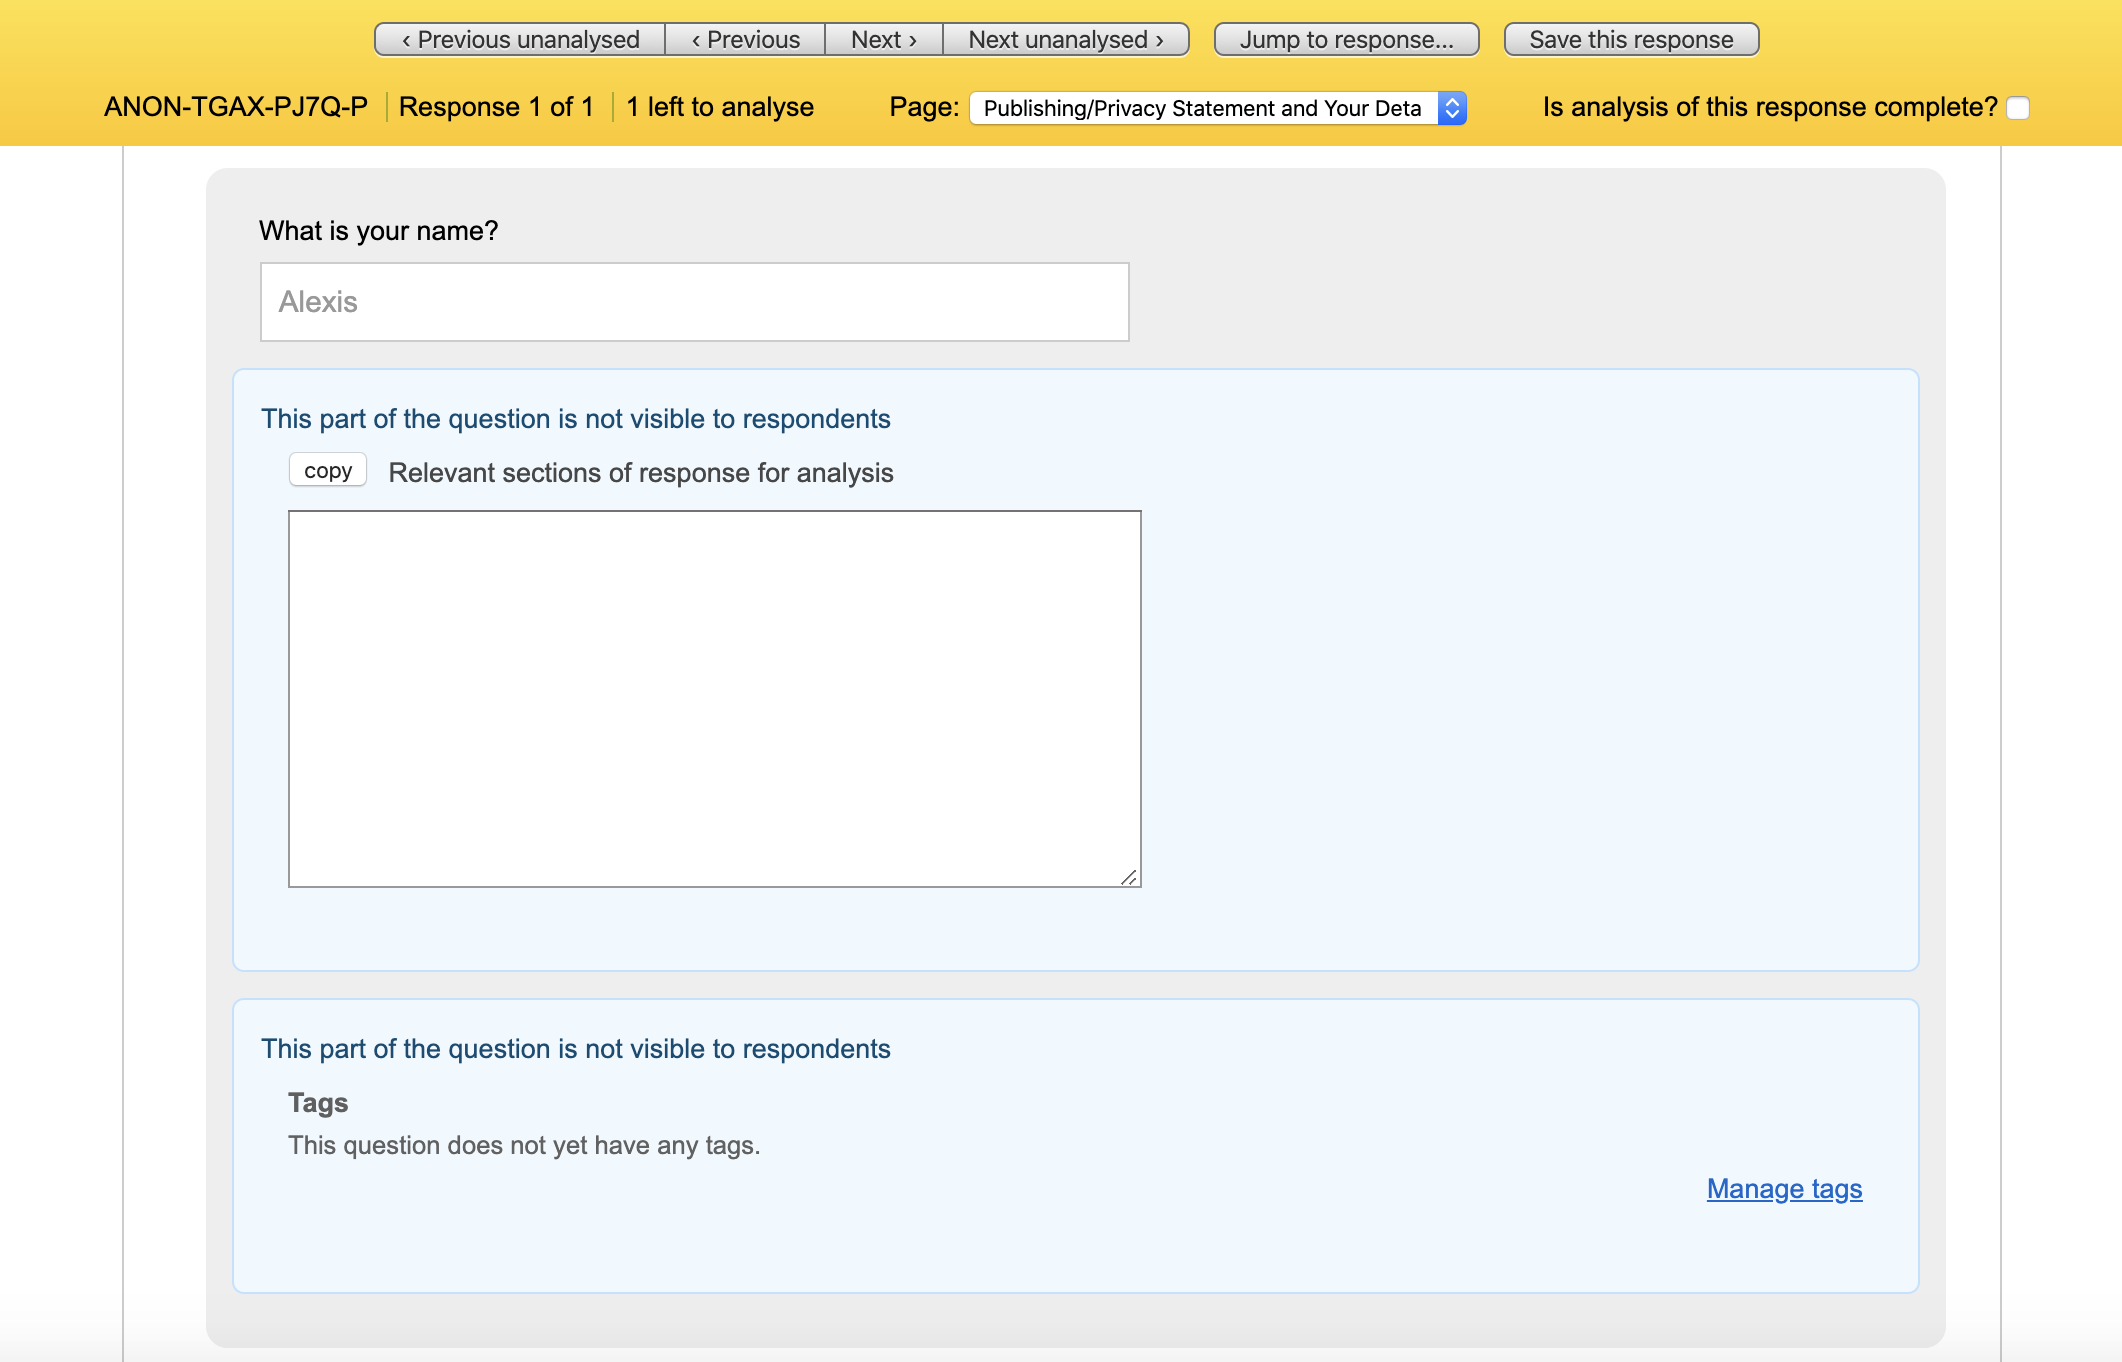 Response in analysis view with menu bar at top and responses to each question